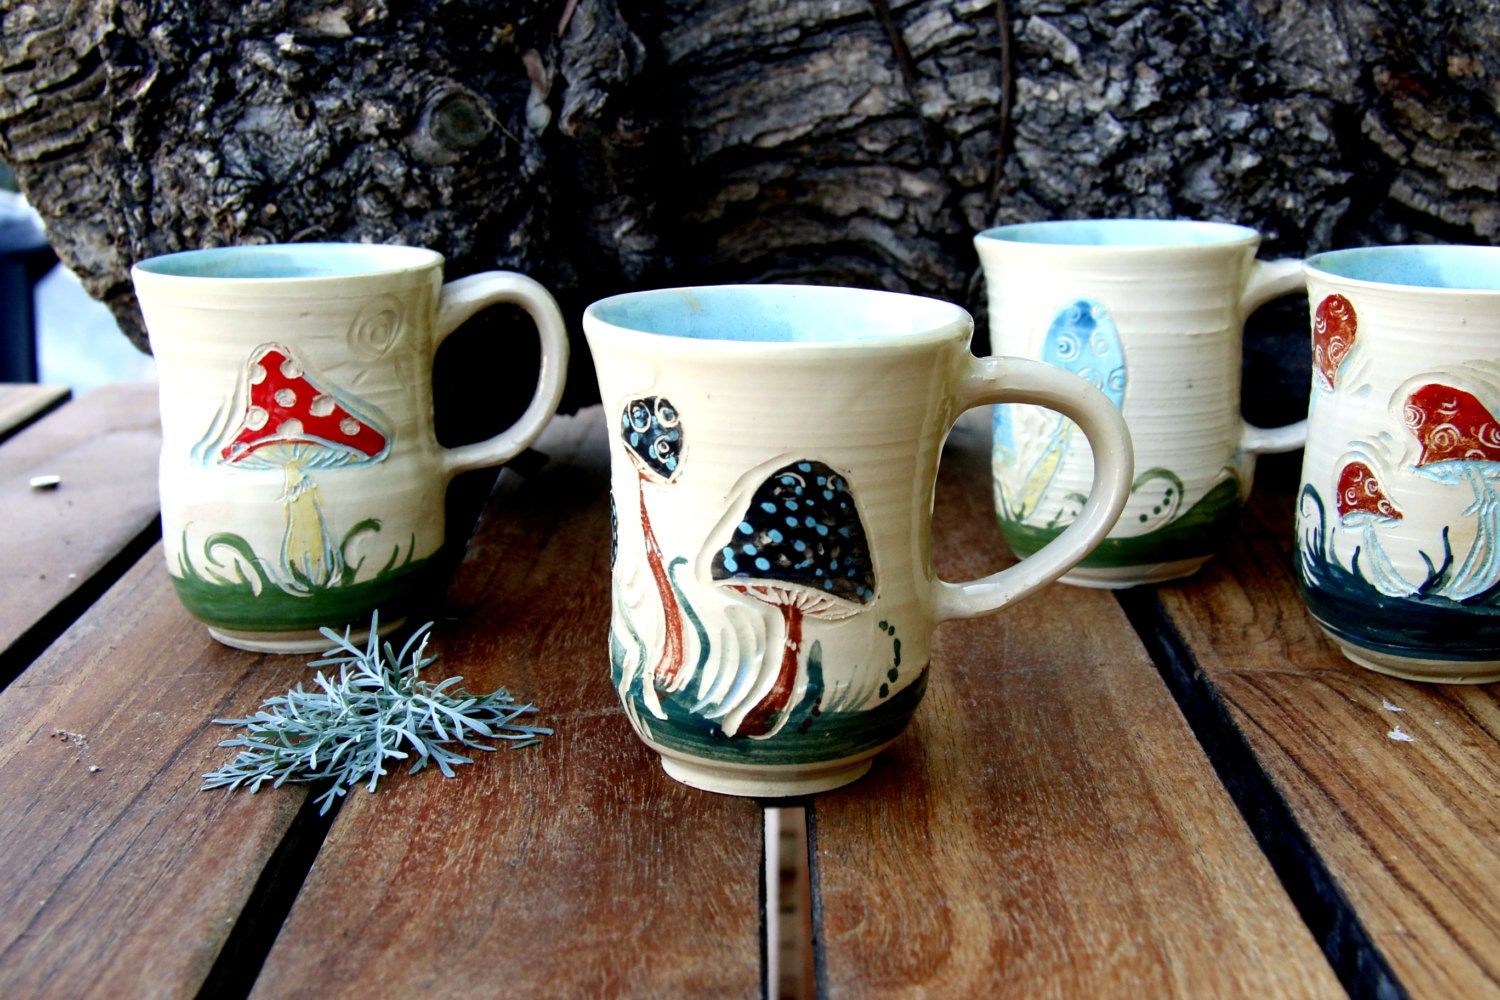 Unique Coffee mugs Ceramic mugs mushroom coffee mug set